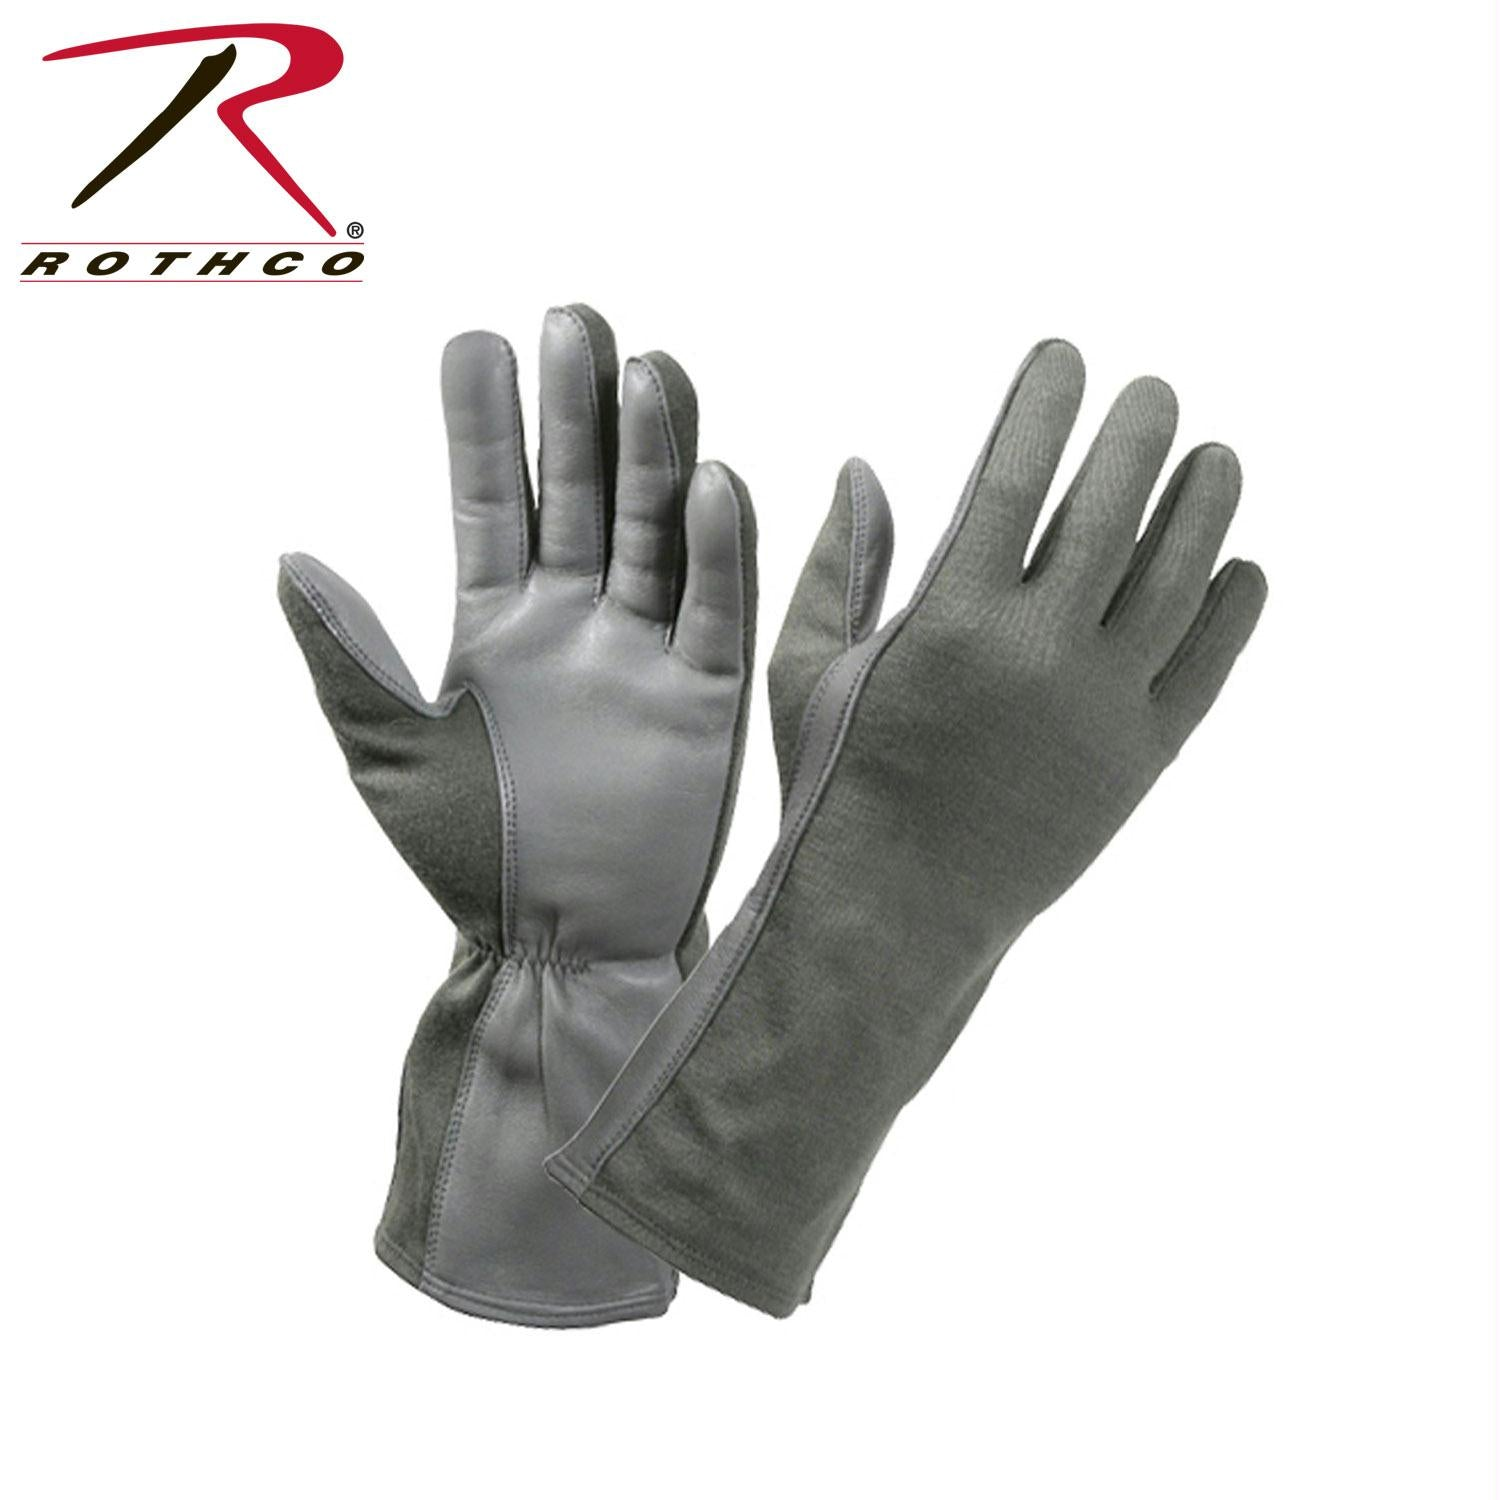 Rothco G.I. Type Flame & Heat Resistant Flight Gloves - Foliage Green / 7